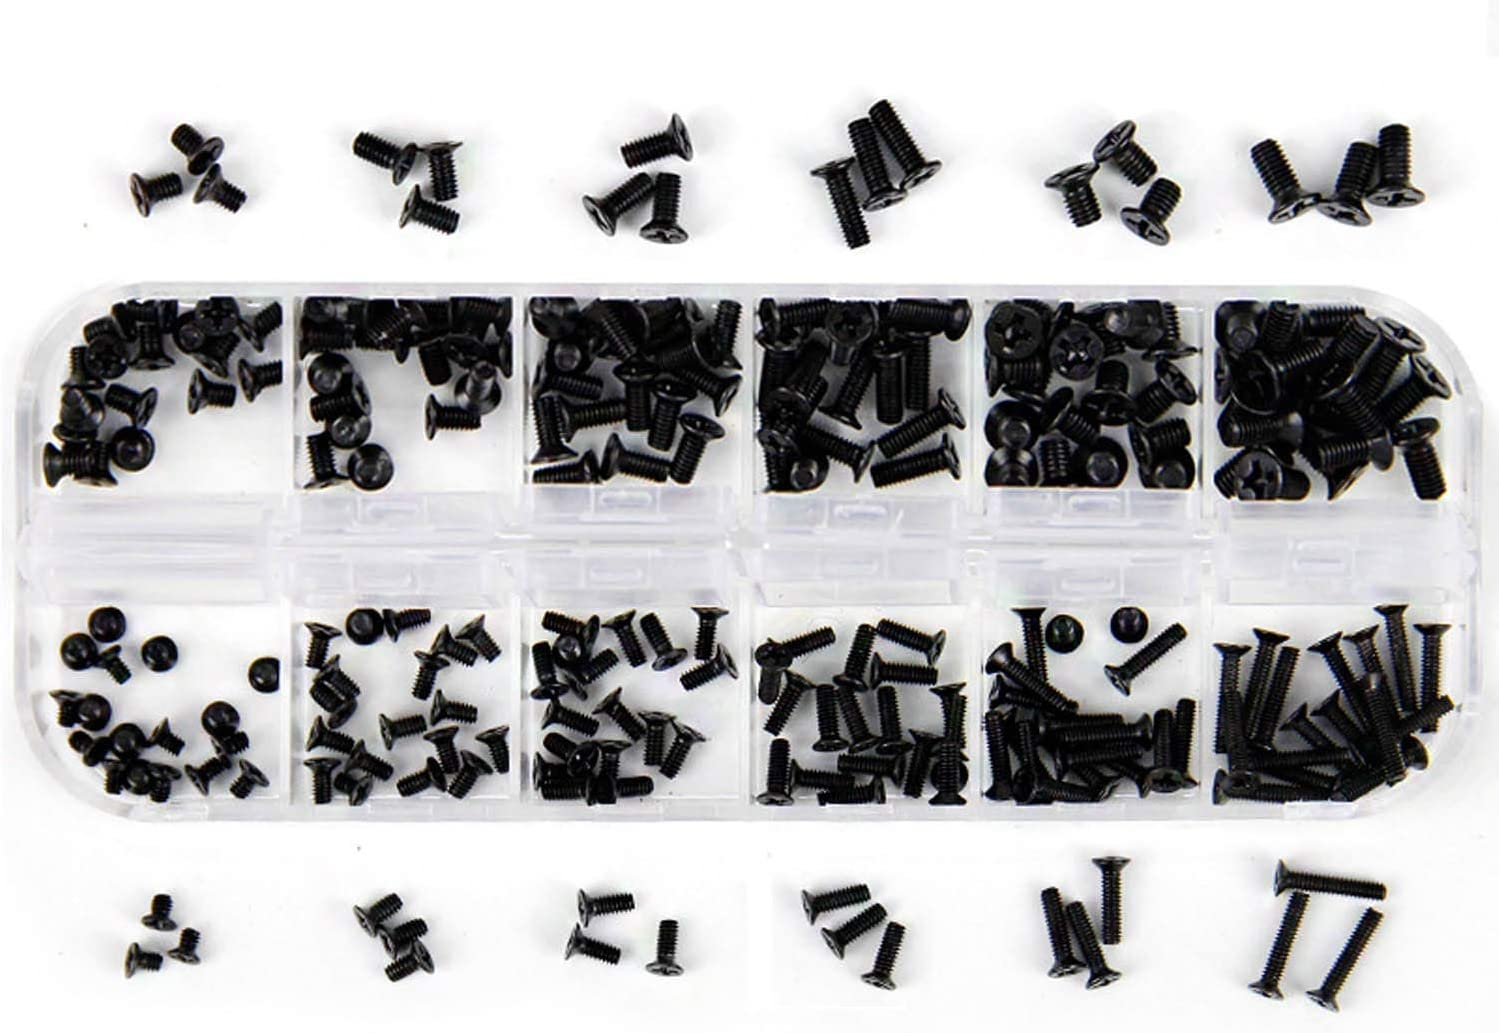 Laptop Notebook Computer Screw Kit Hotetey 240 Pieces M2 / M2.5 / M3 Screws Set for IBM HP Dell Lenovo Samsung Sony Toshiba Gateway Acer